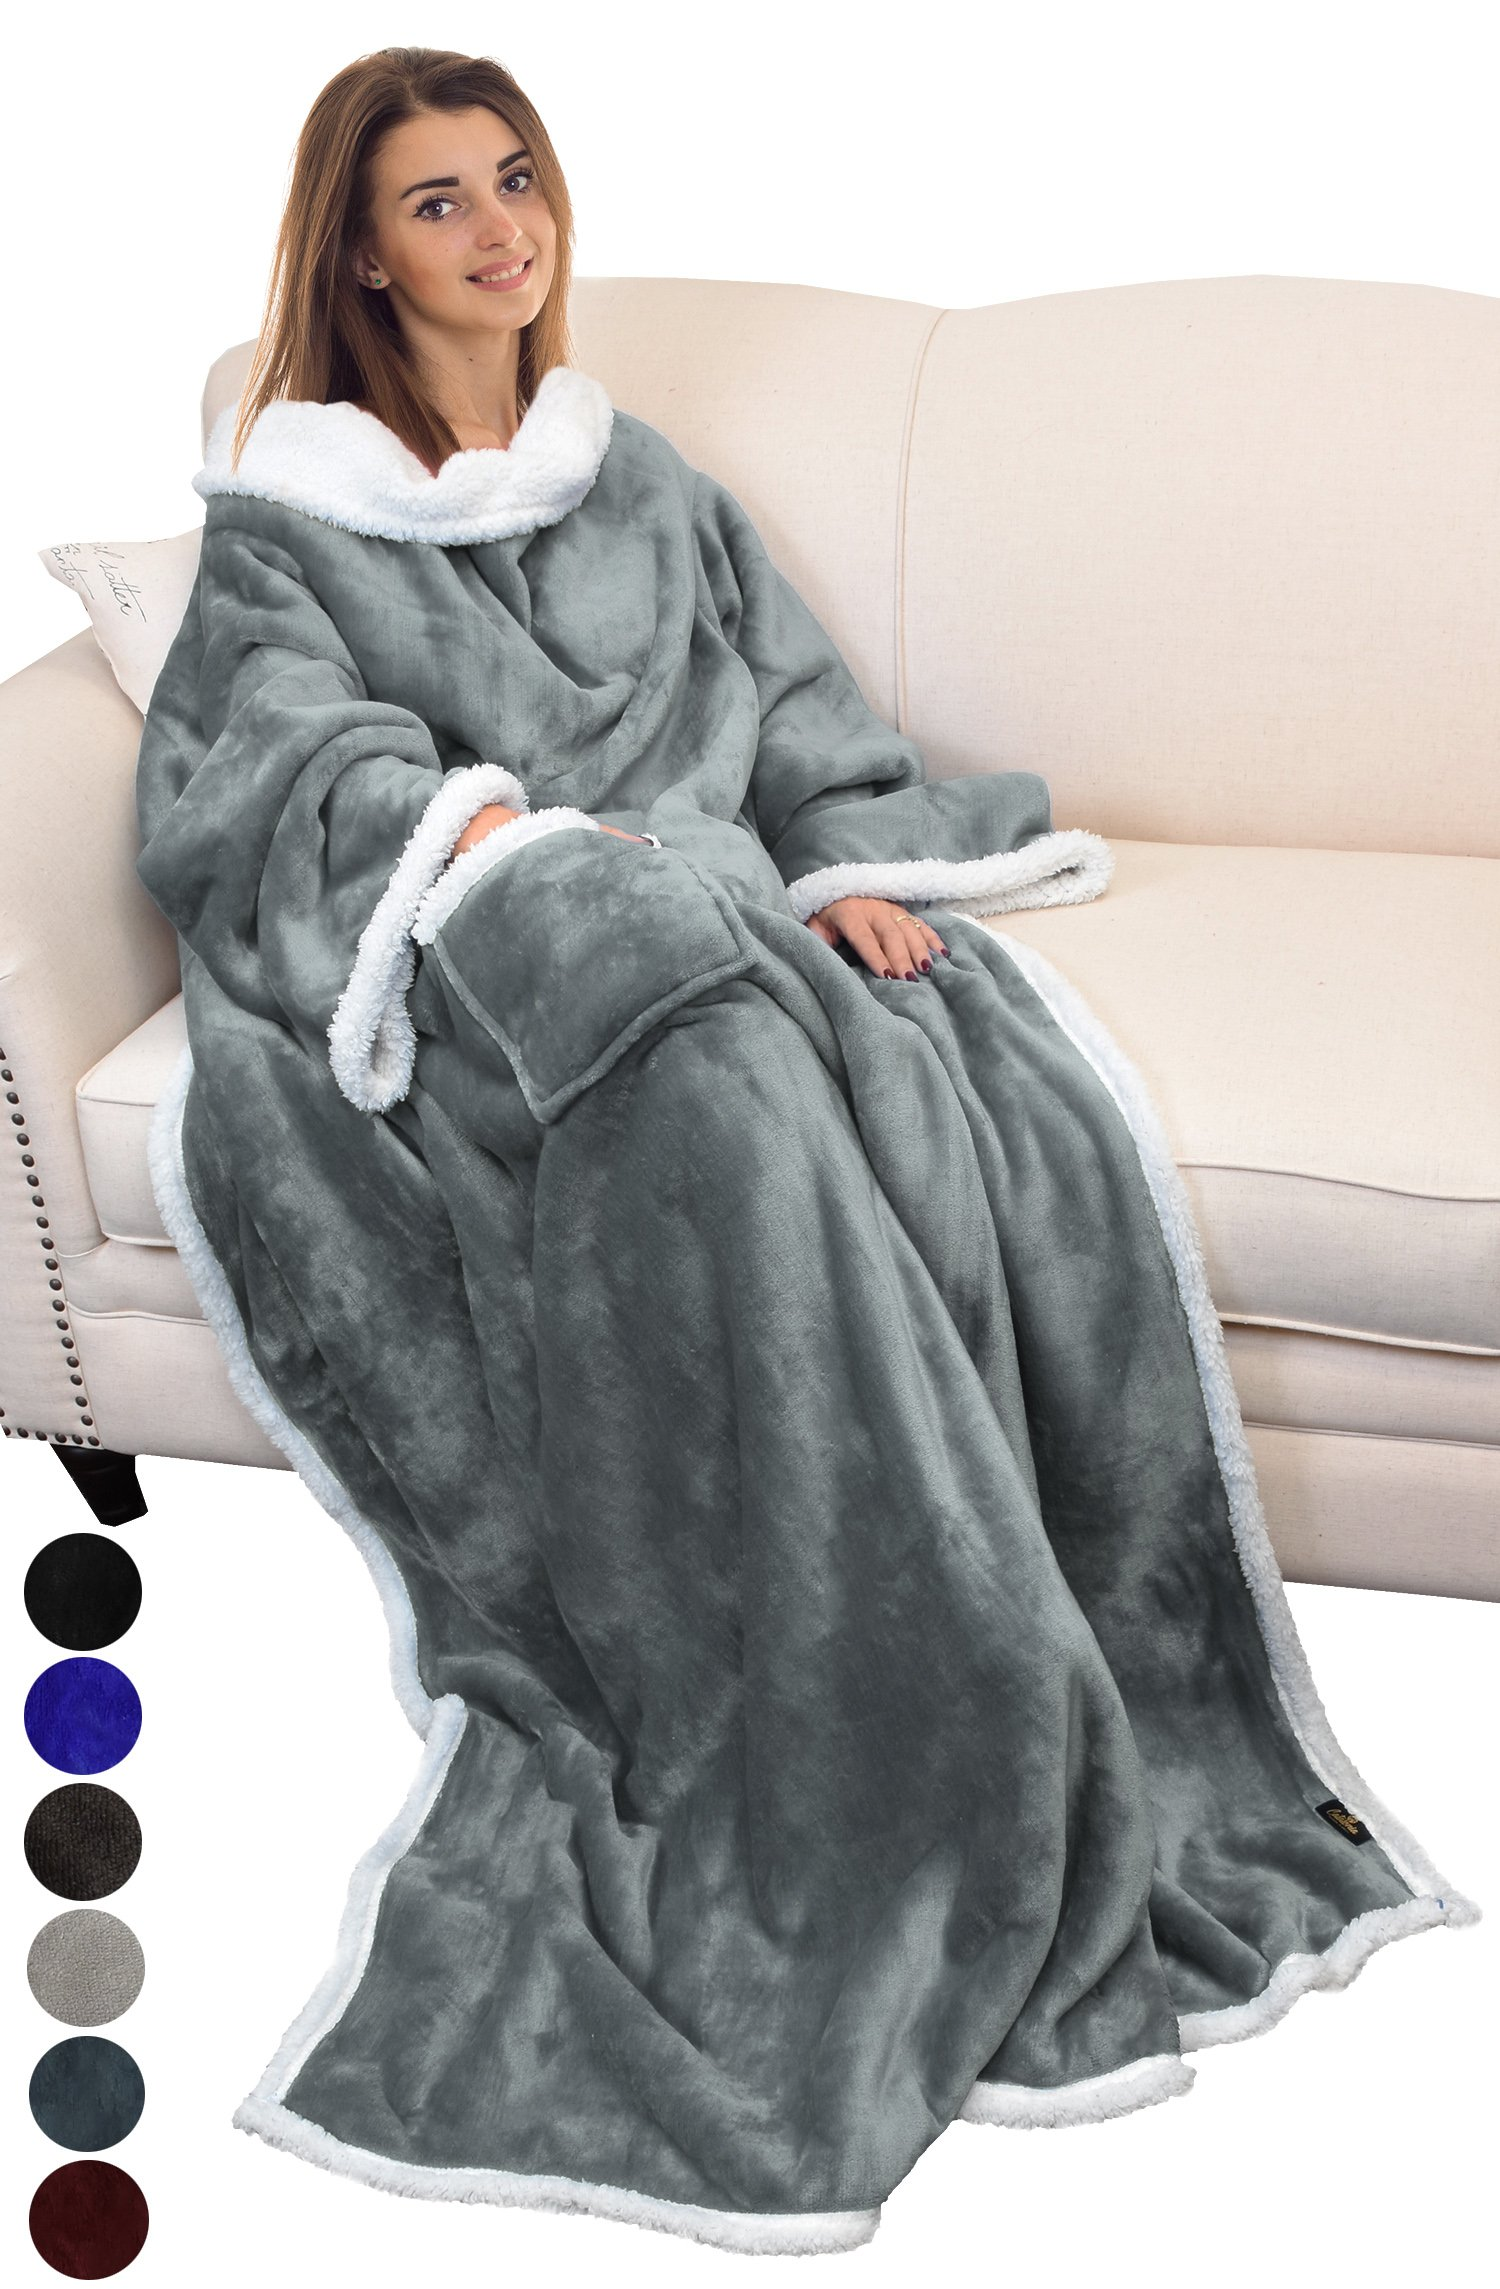 Catalonia Sherpa Wearable Blanket with Sleeves Arms,Super Soft Warm Comfy Large Fleece Plush Sleeved TV Throws Wrap Robe Blanket for Adult Women and Men Grey by Catalonia